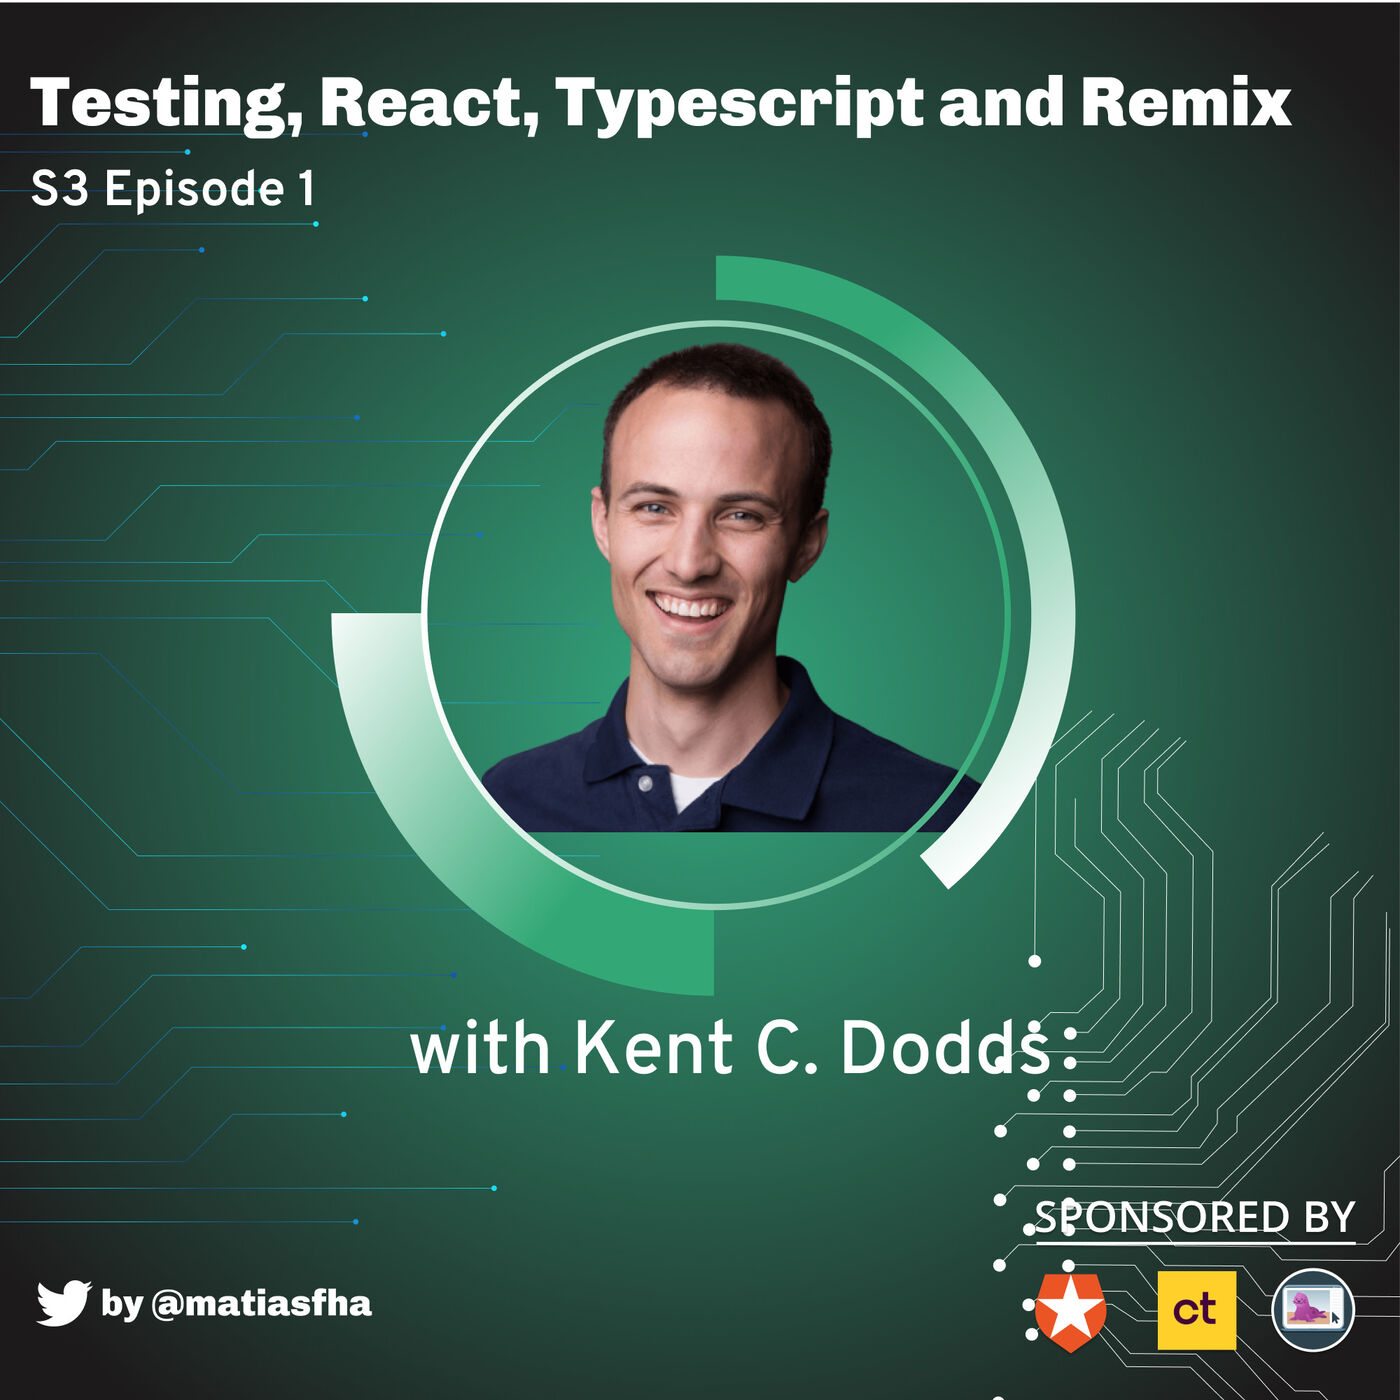 Testing, React, Typescript and Remix with Kent C. Dodds